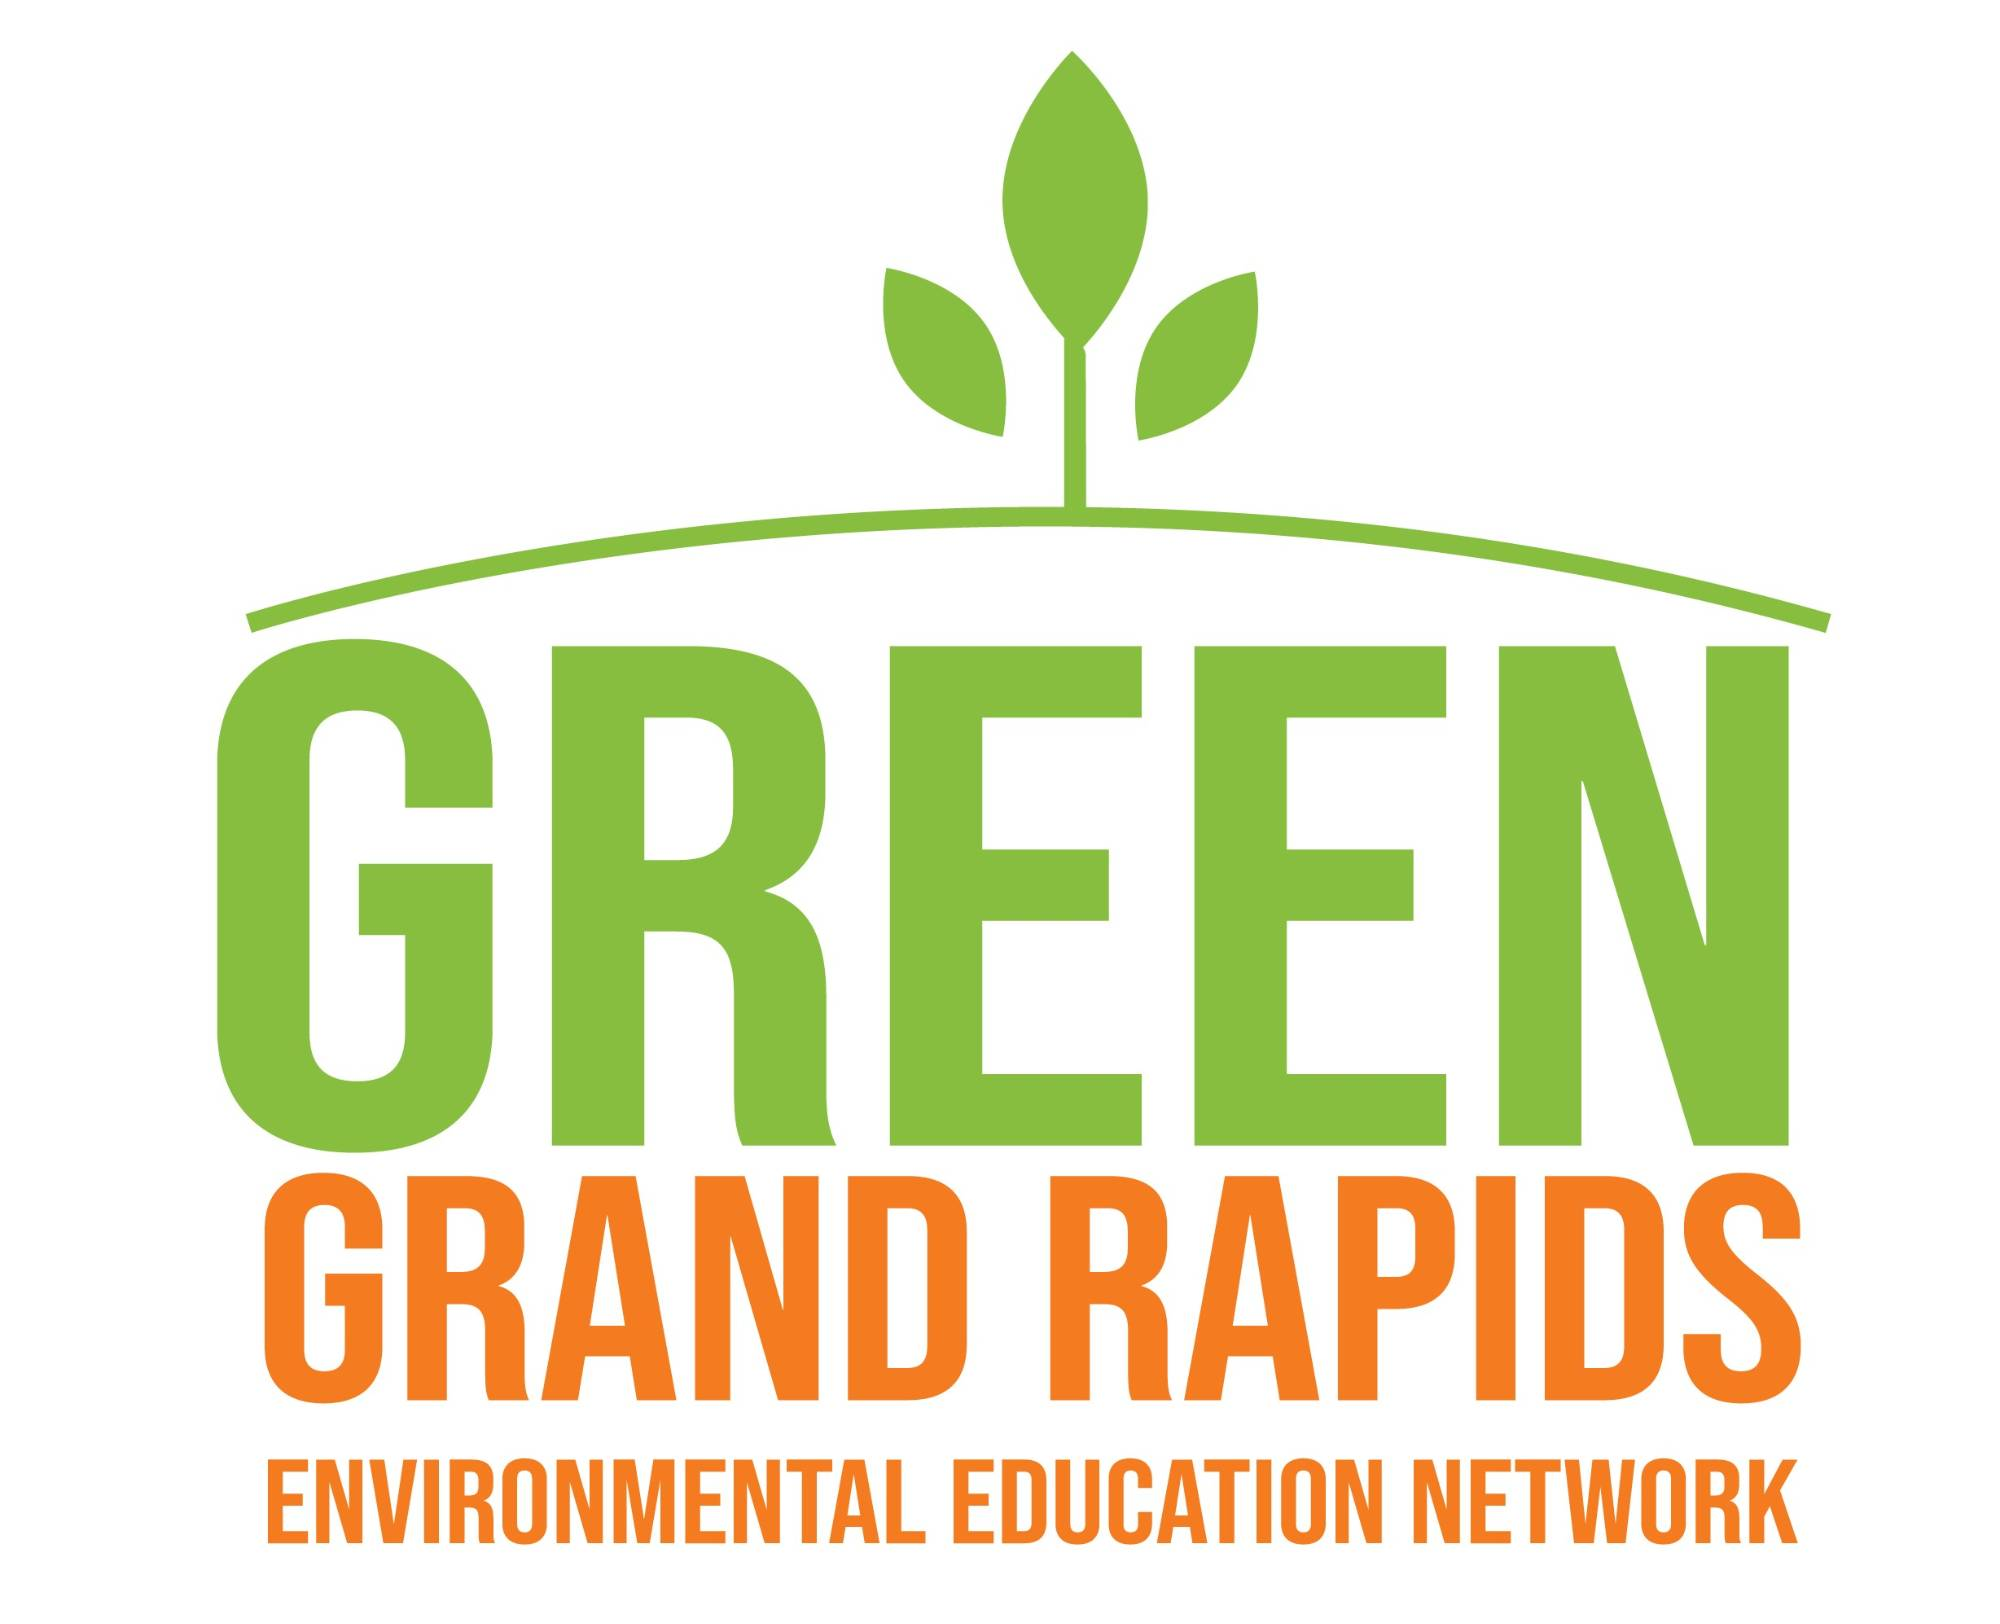 GREEN Grand Rapids Environmental Education Network logo